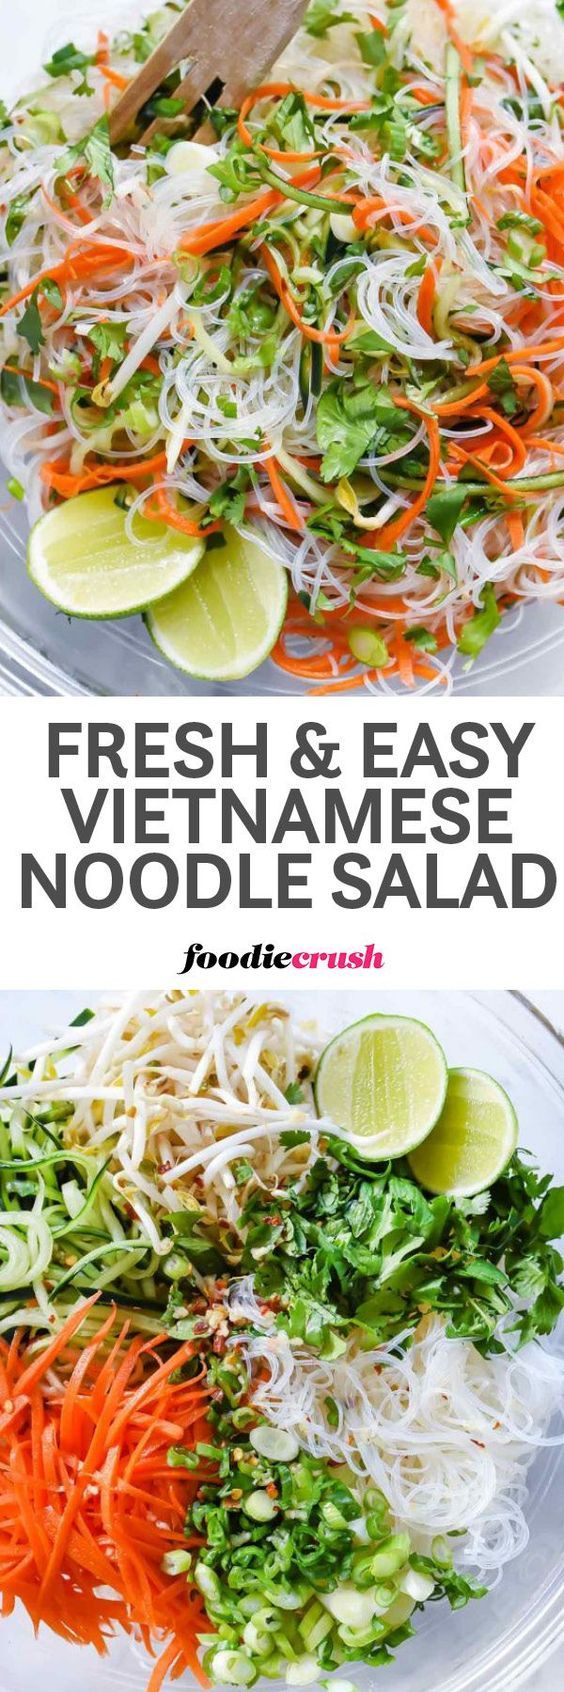 Fresh and Easy Vietnamese Noodle Salad Recipe   Spring Rolls Salad Recipe   Rice Noodle Salad Recipe   Vermicelli Noodle Recipe foodiecrush.com Come and see our new website at bakedcomfortfood.com!